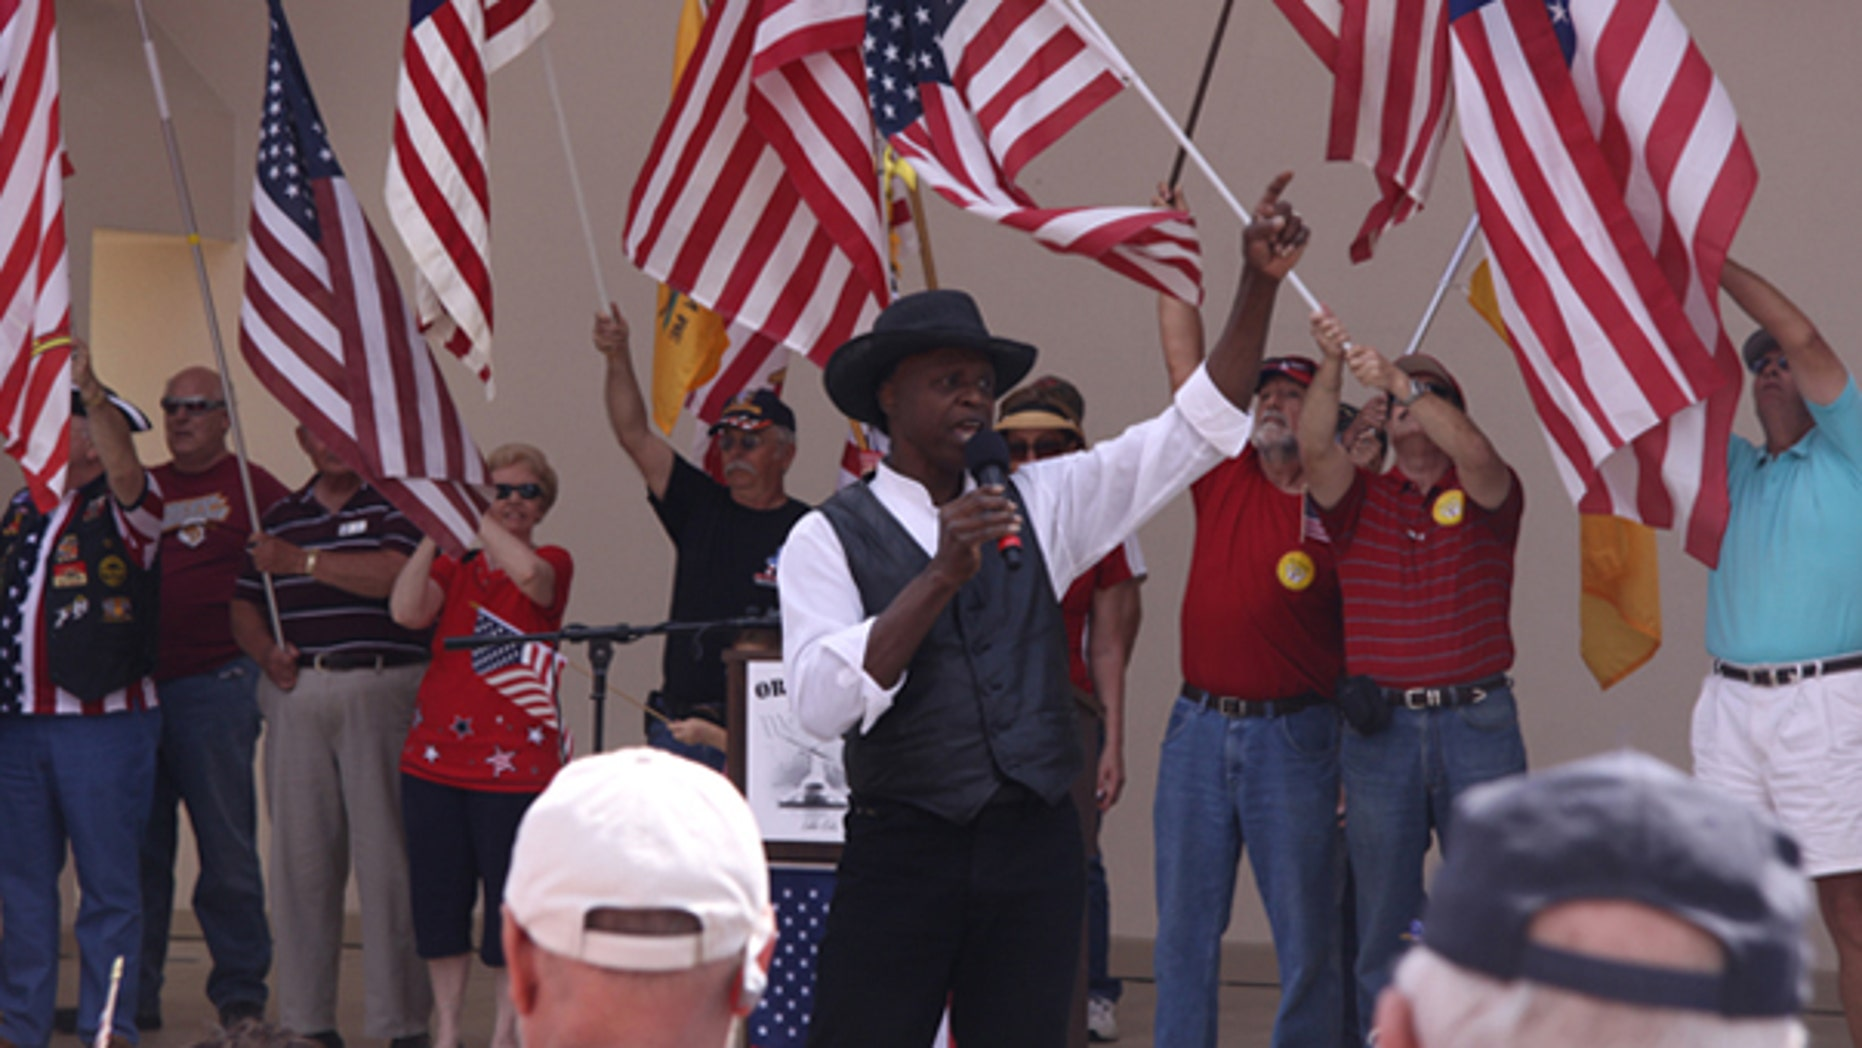 Lloyd Marcus is shown here at a March 2009 tea party rally in Orlando. (Courtesy of Lloyd Marcus)